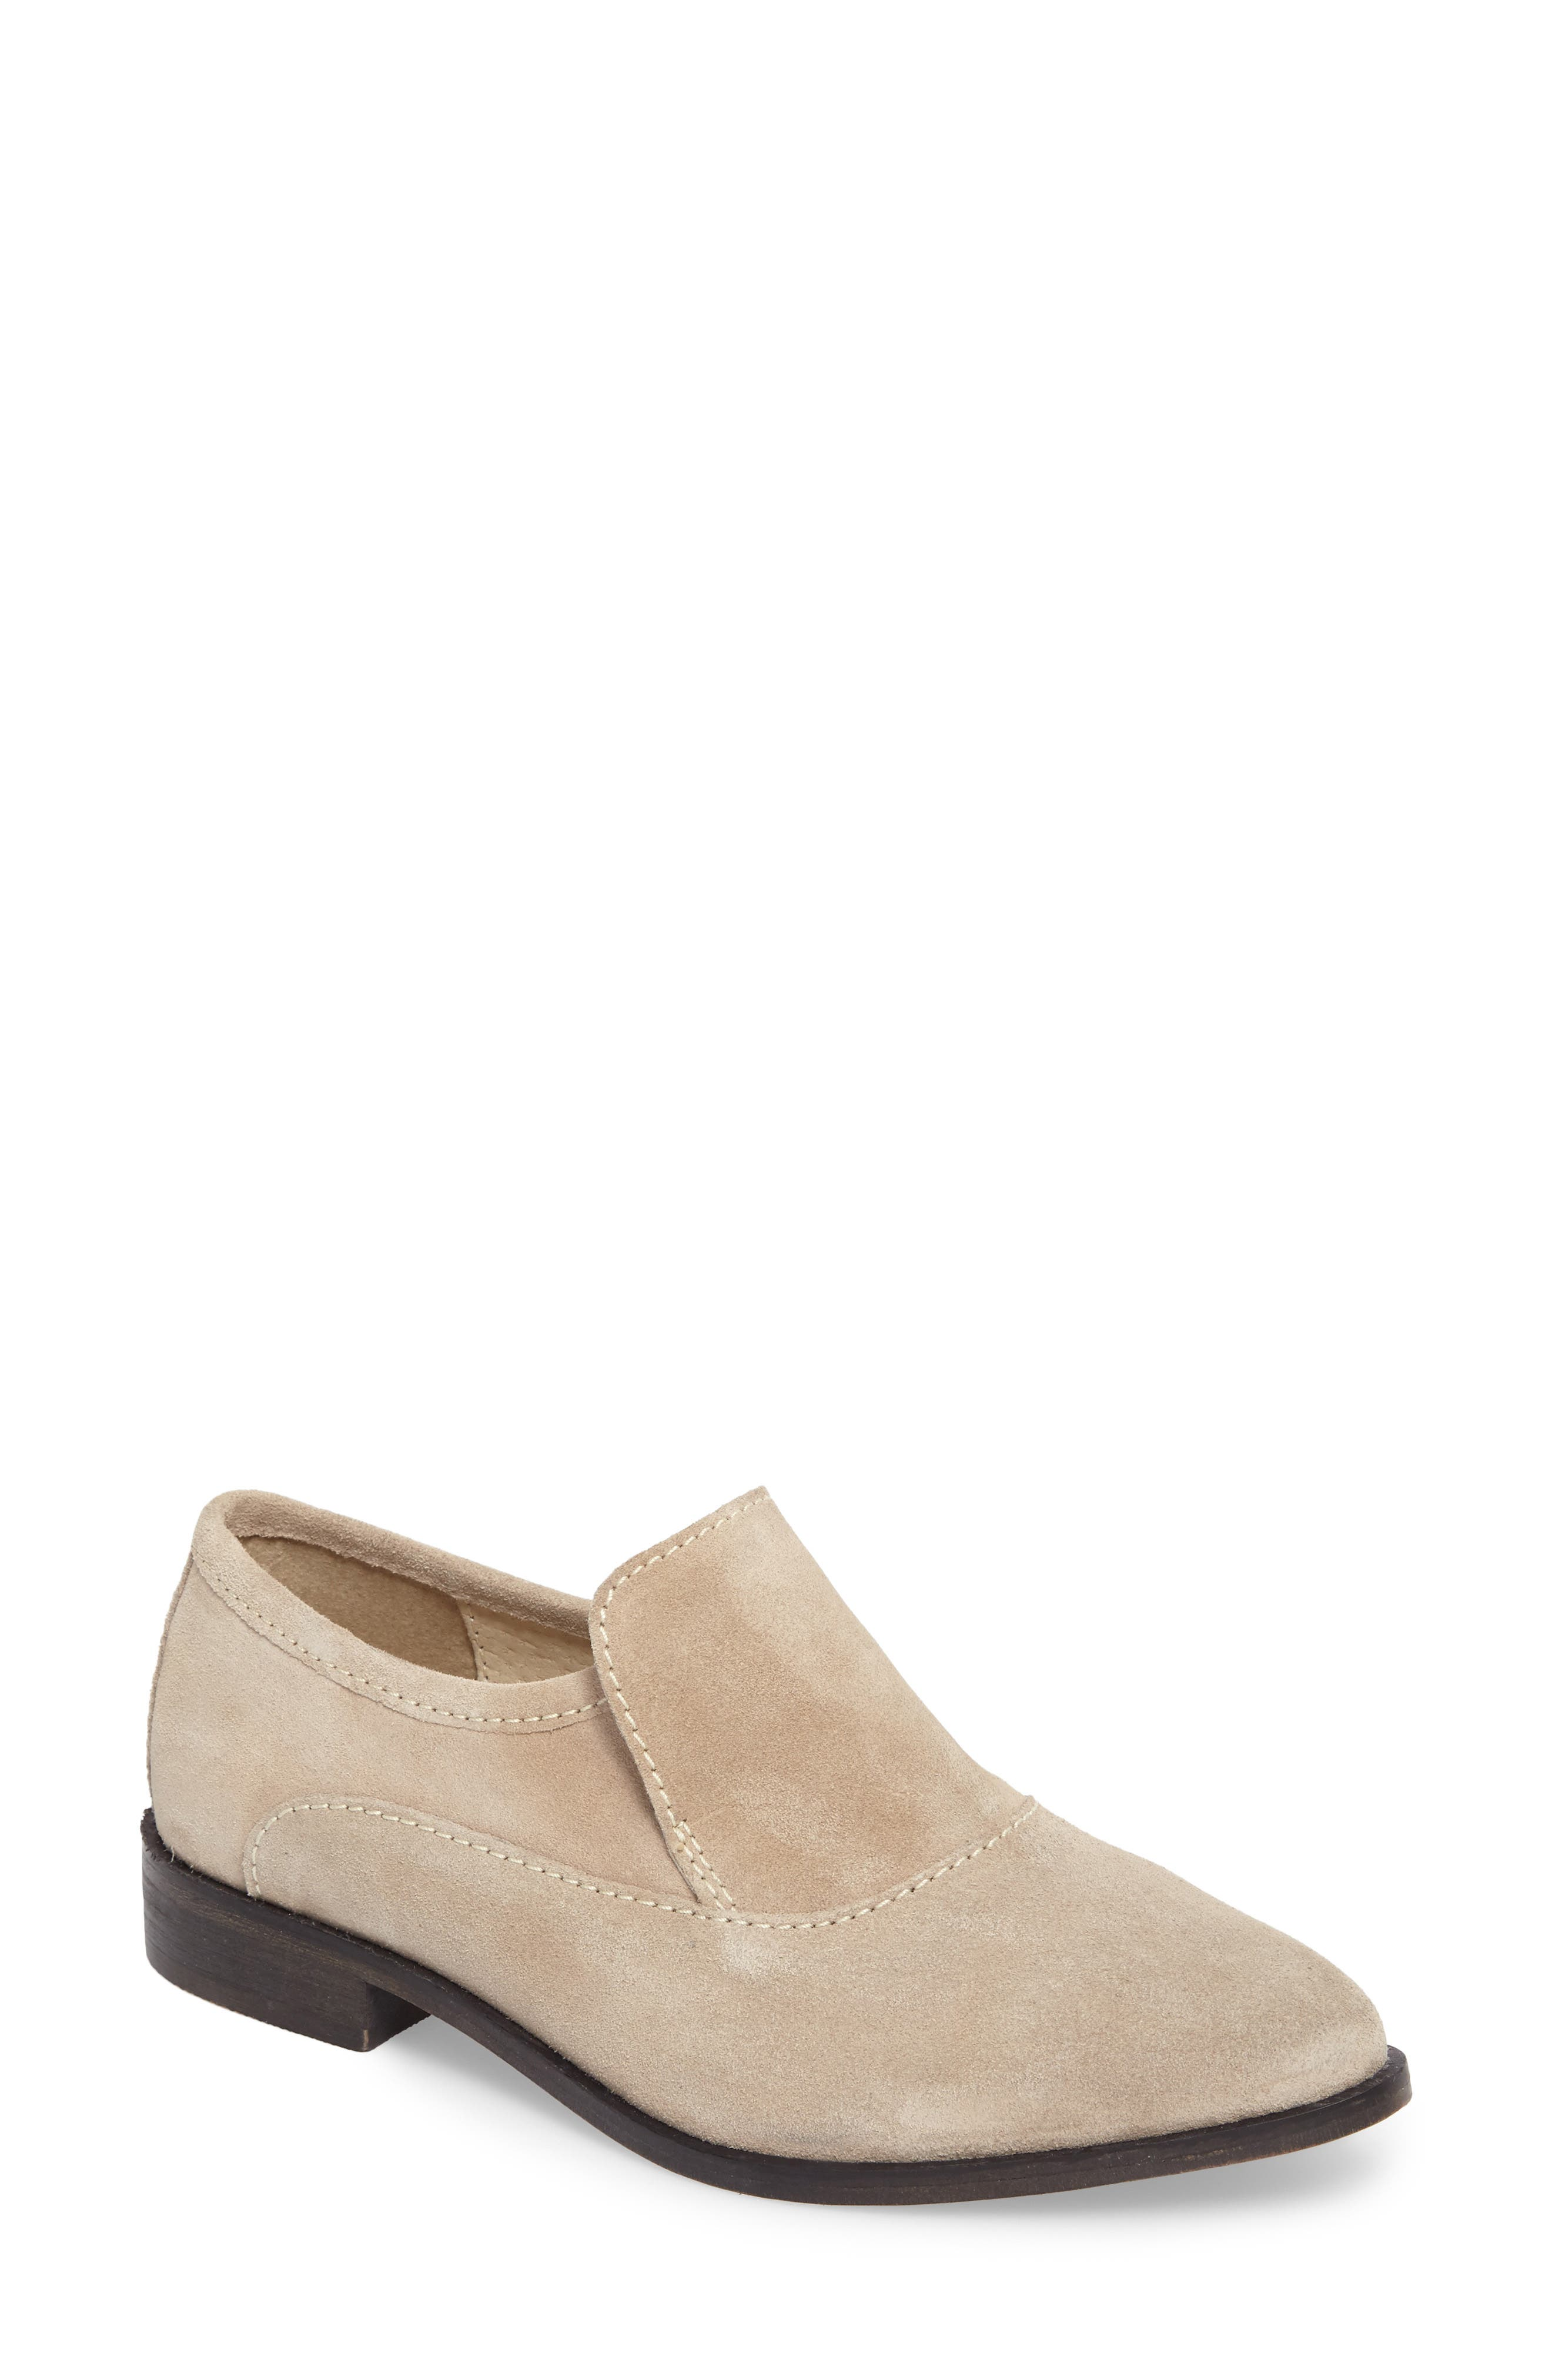 Brady Loafer,                             Main thumbnail 4, color,